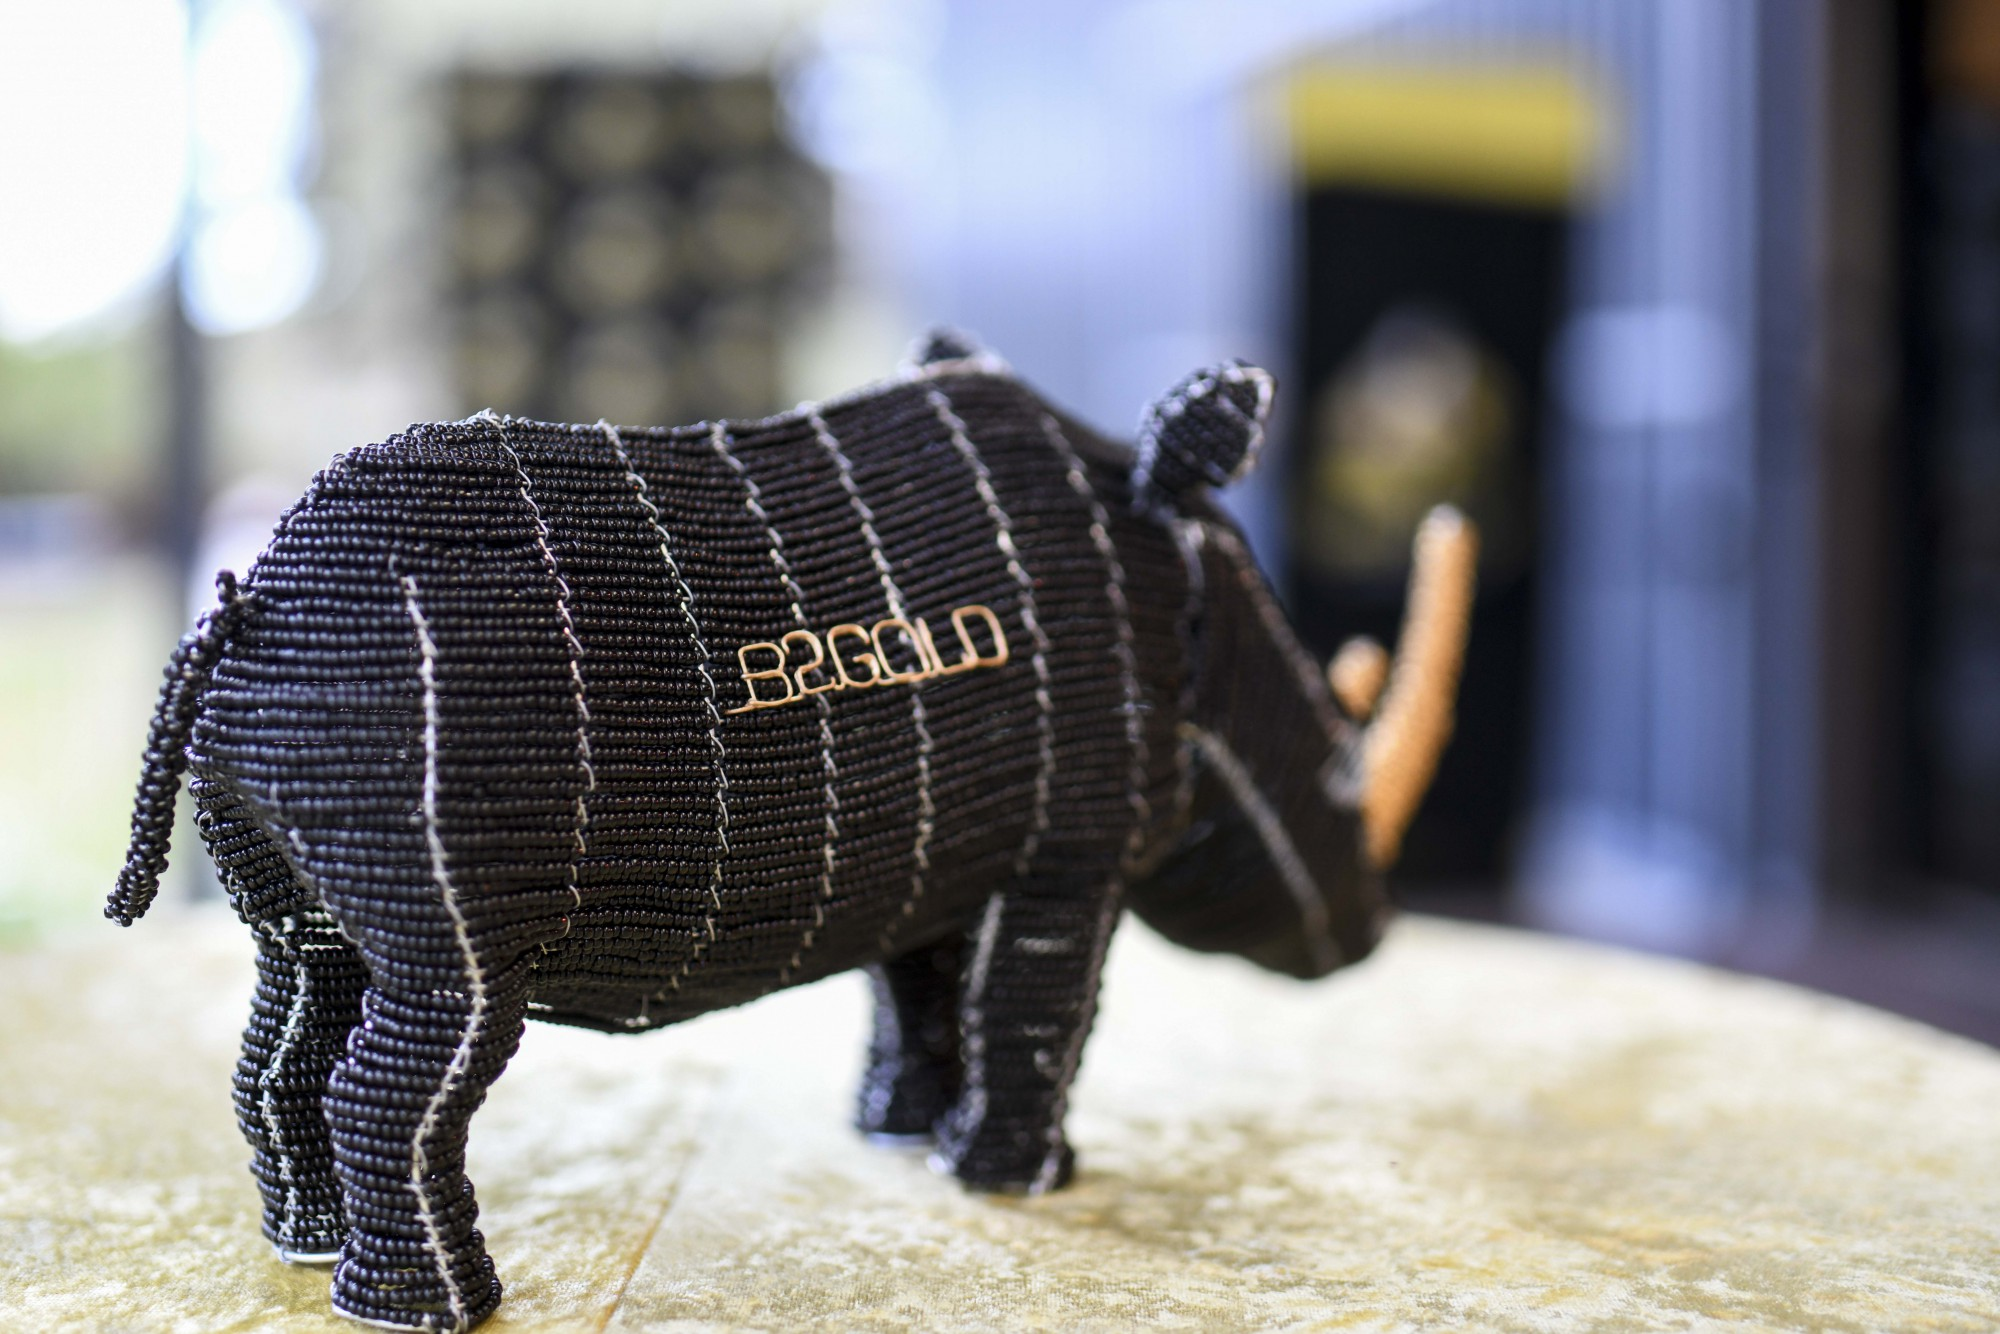 Miniature Rhino made by local artisans from beads